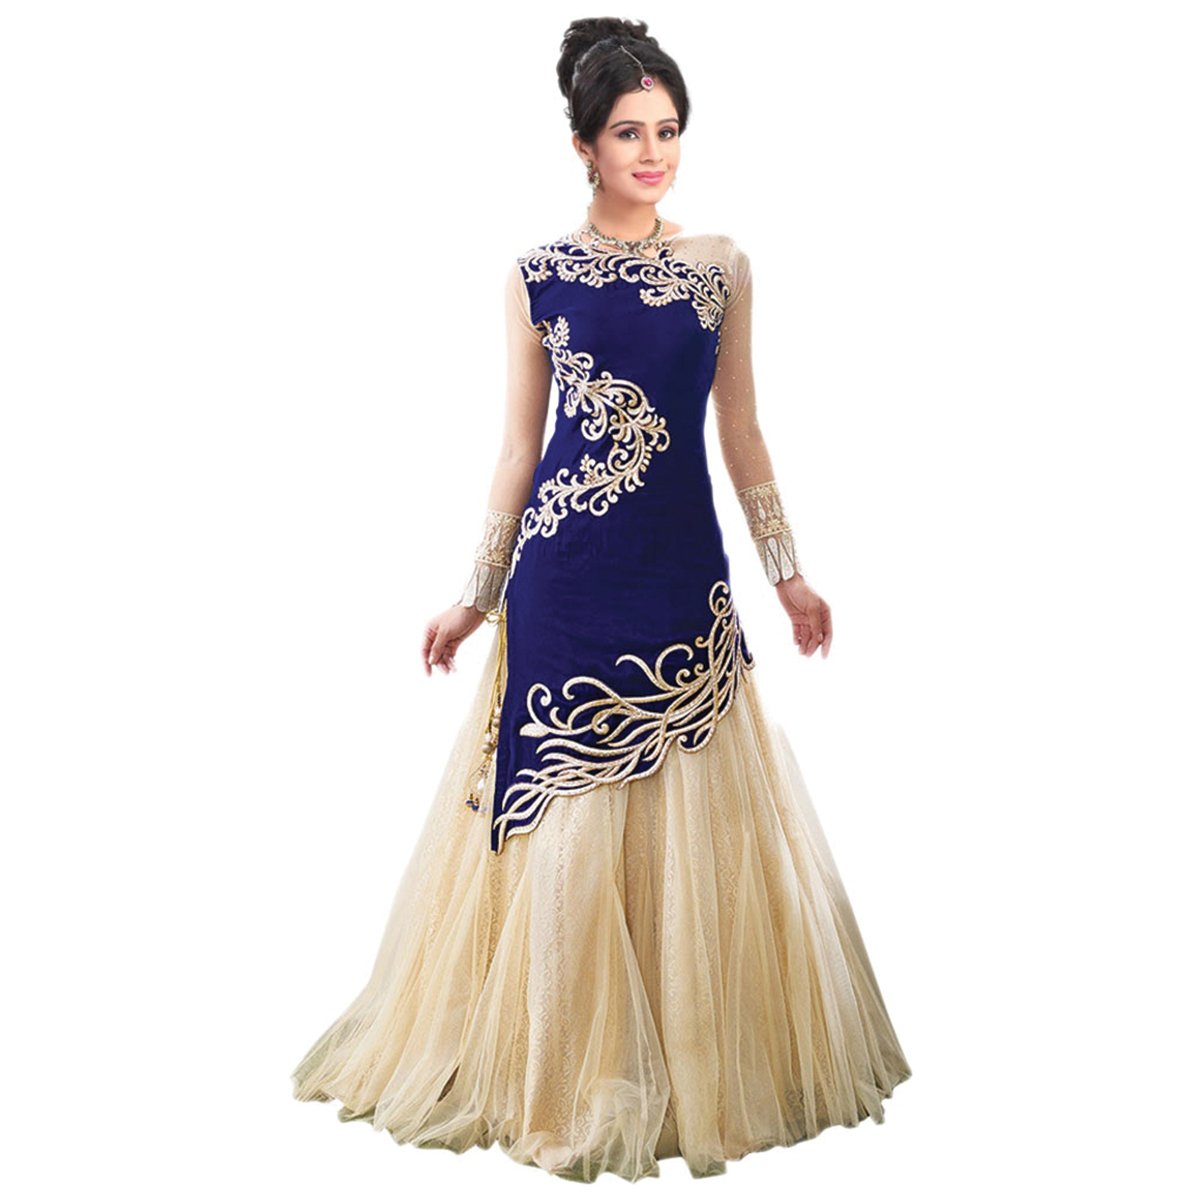 d94199e16b Blue net embroidered semi stitched party-wear-gowns - Tenet Retail - 801518